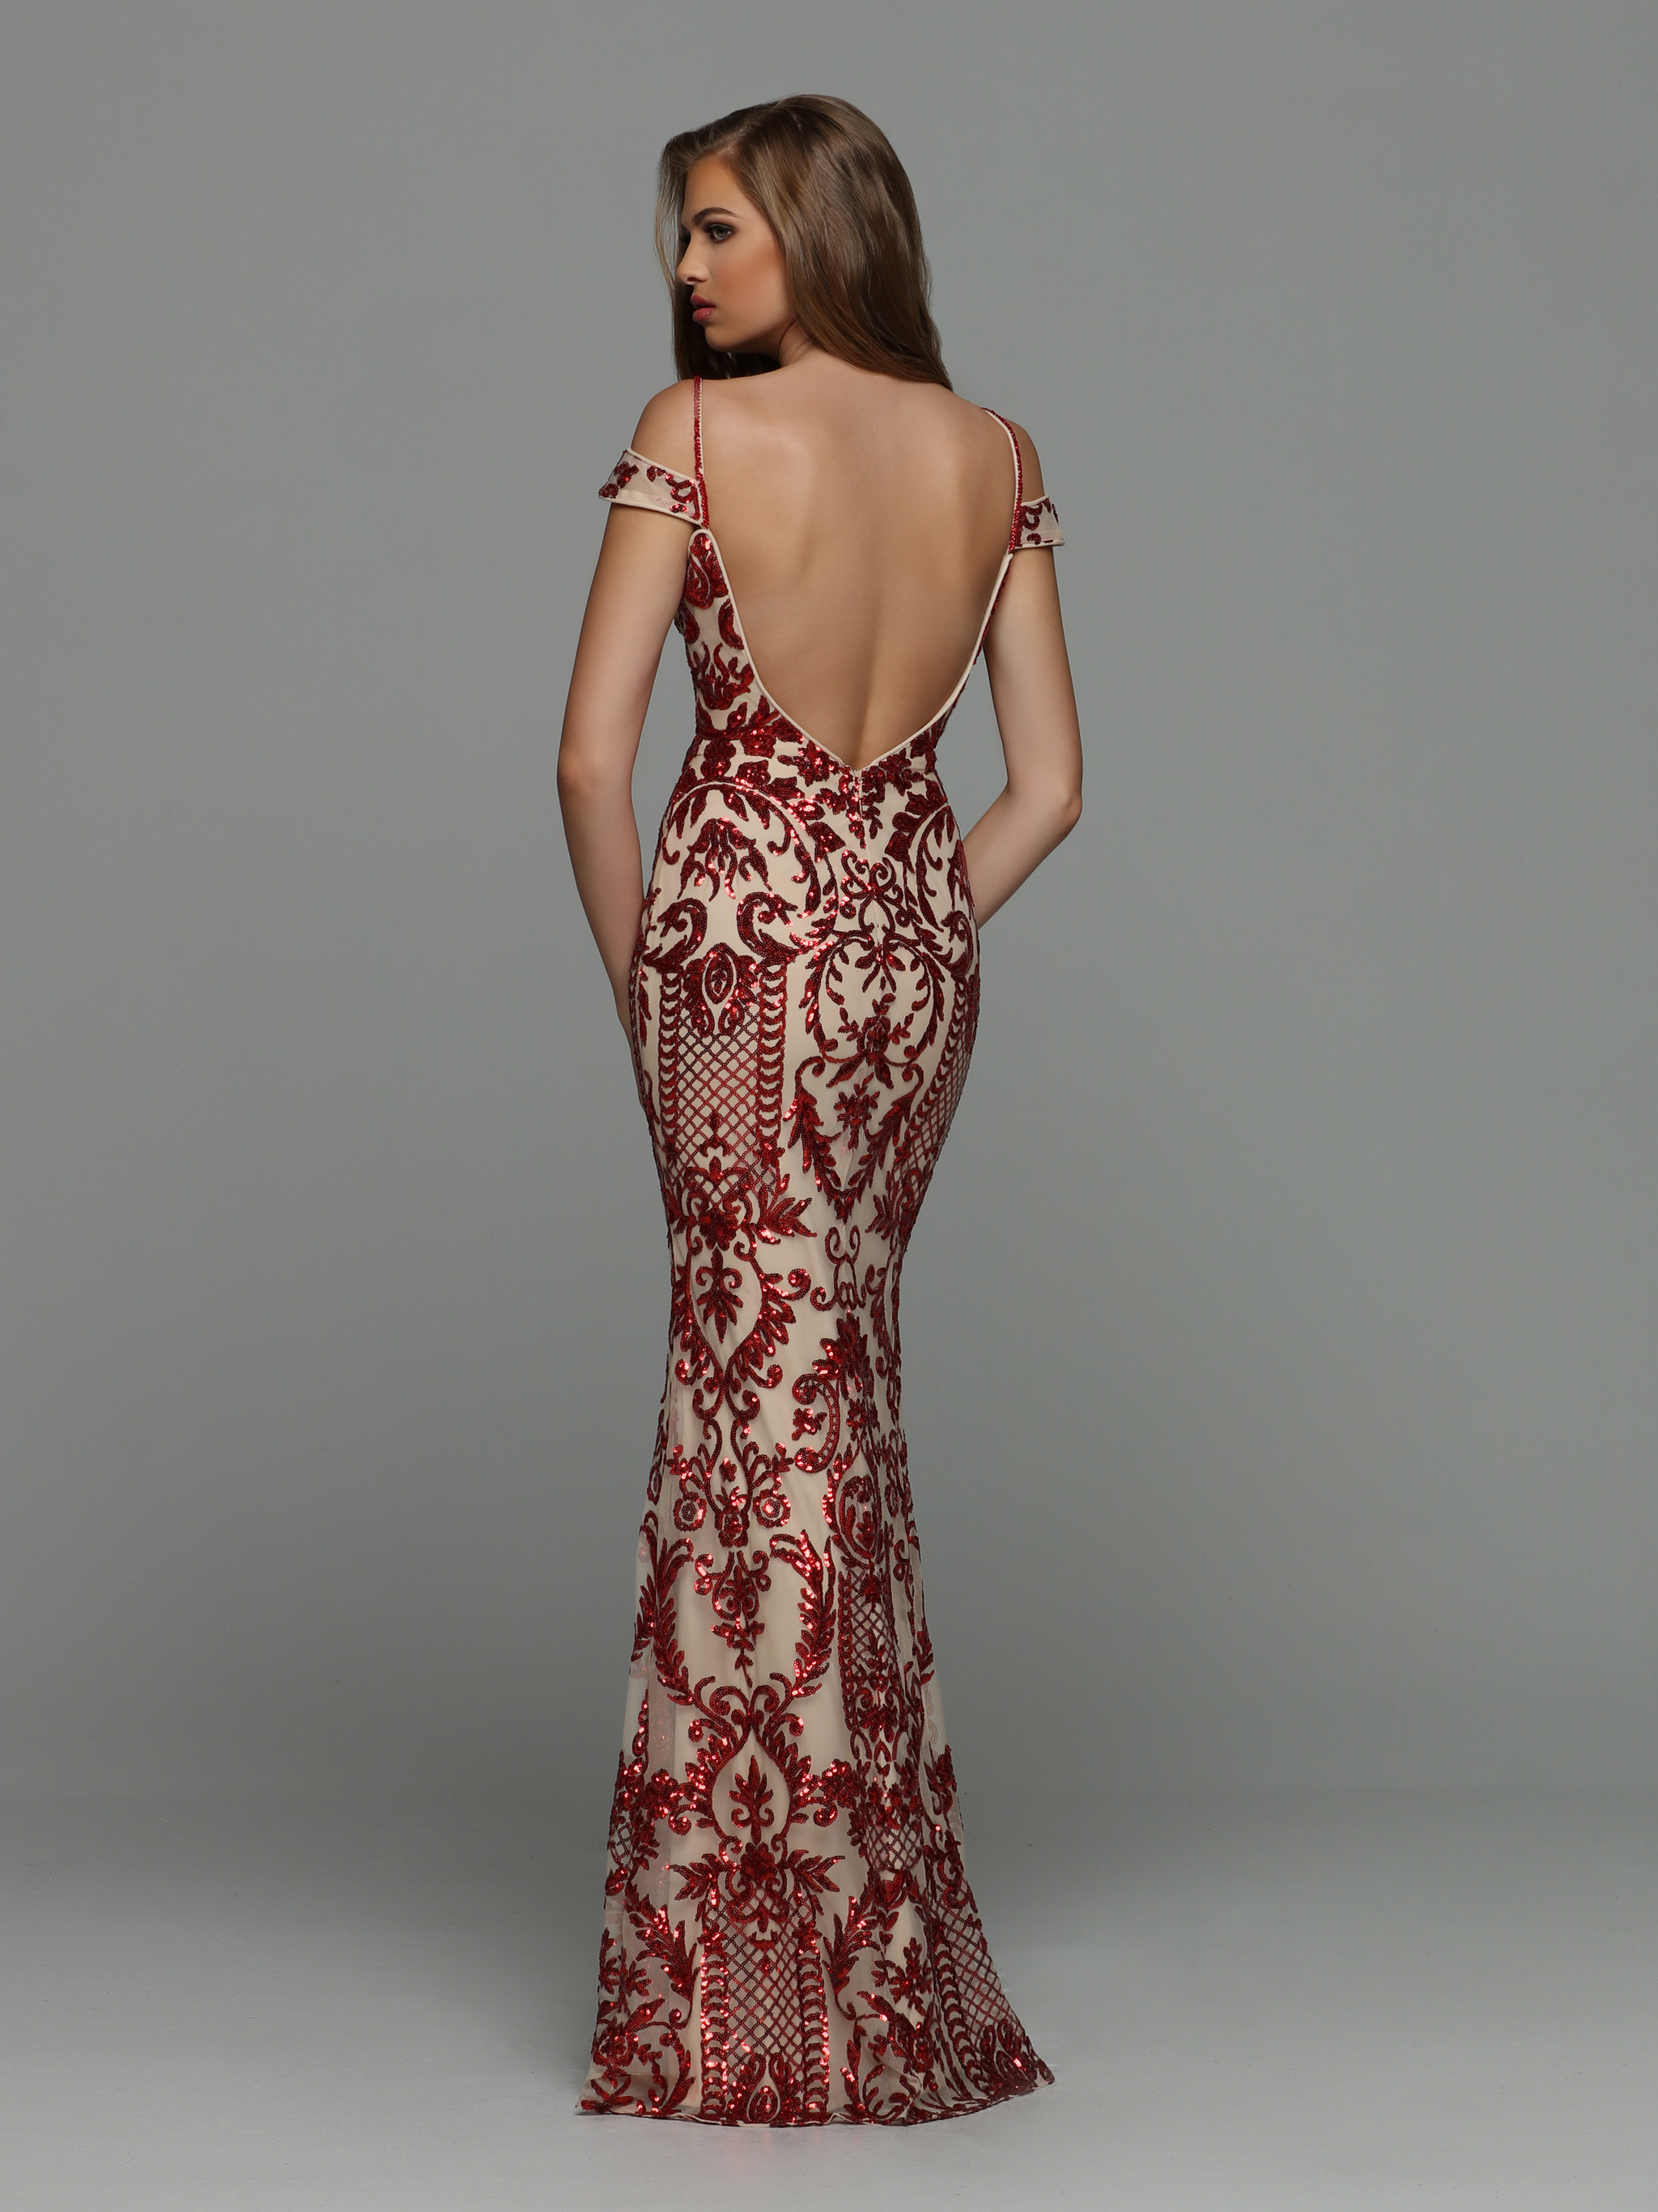 Image showing back view of style #71971